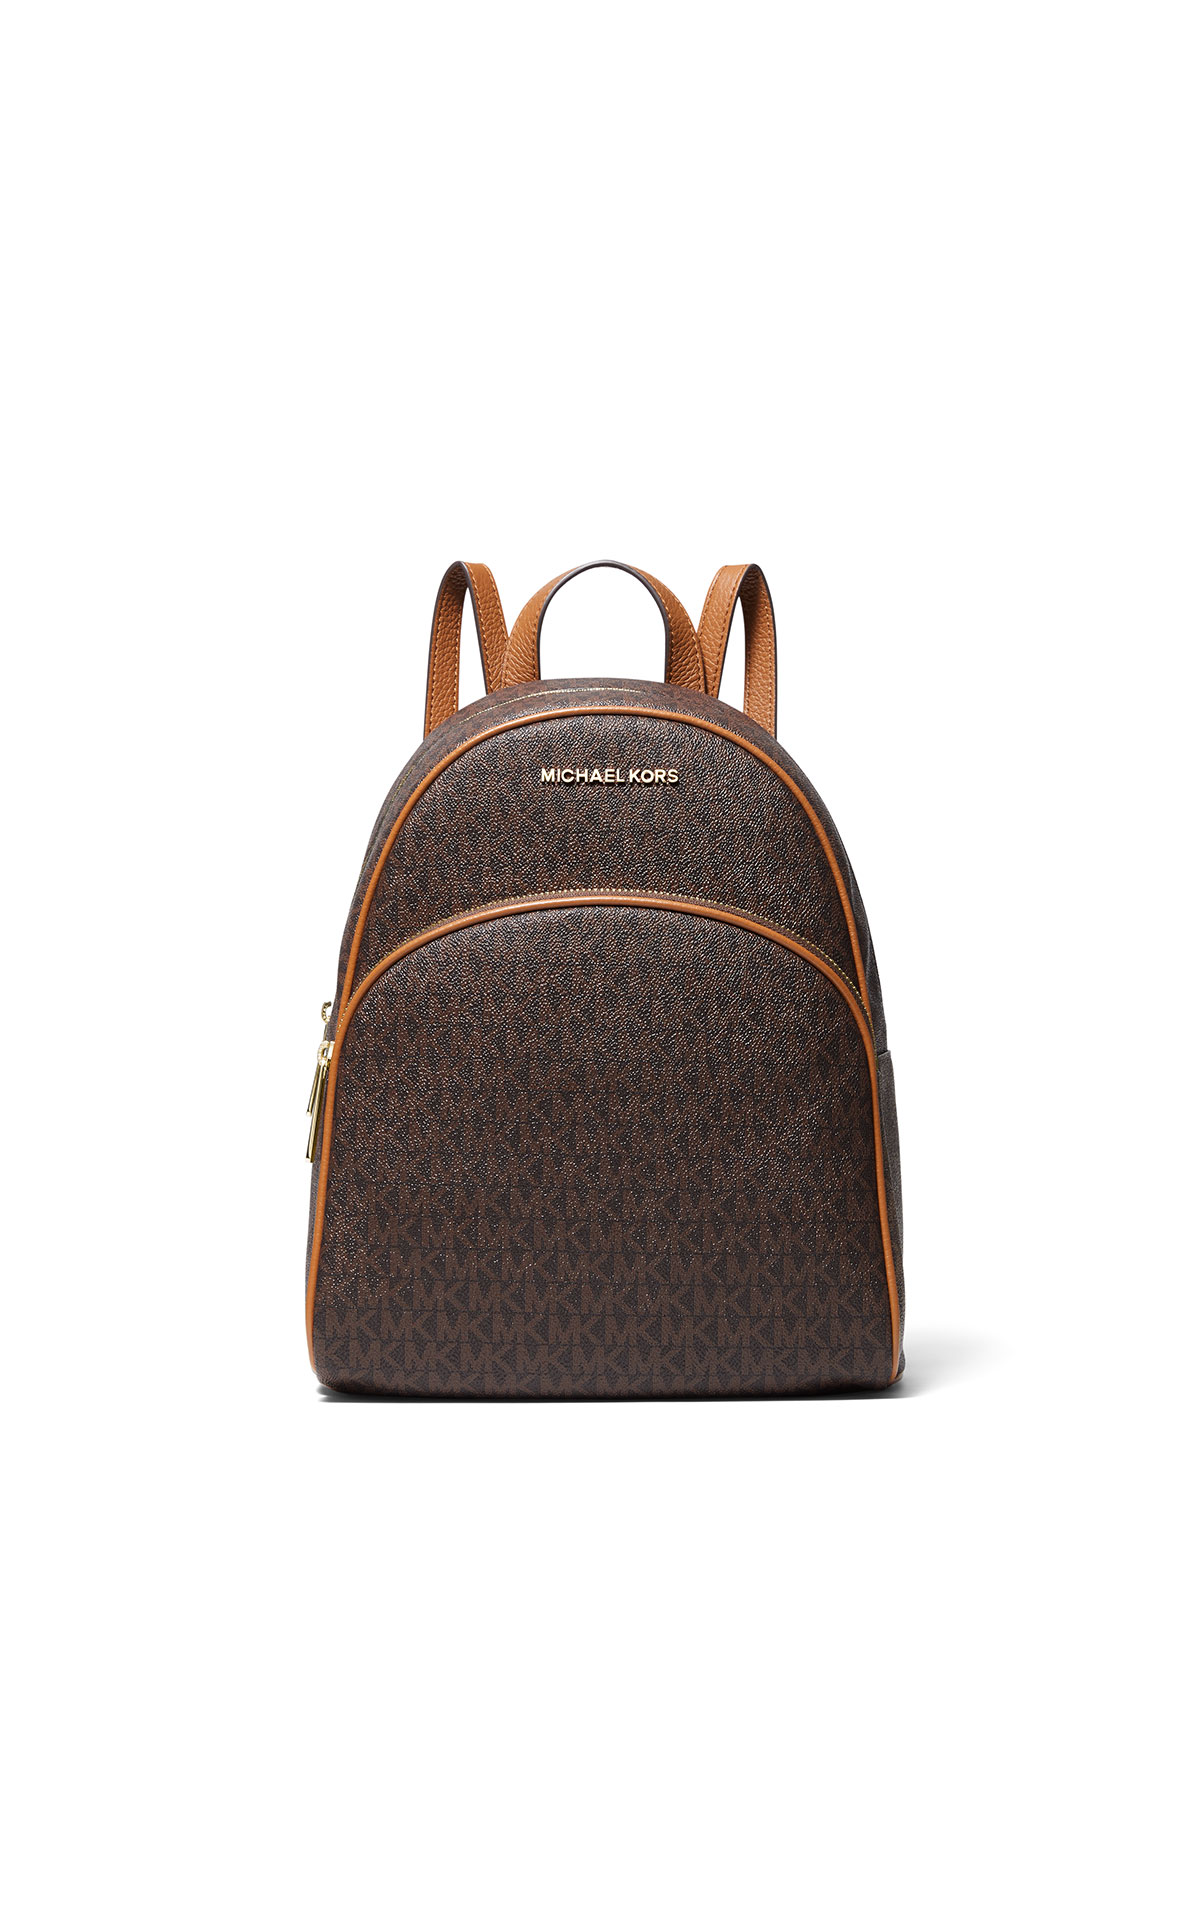 Michael Kors Abbey Backpack at The Bicester Village Shopping Collection